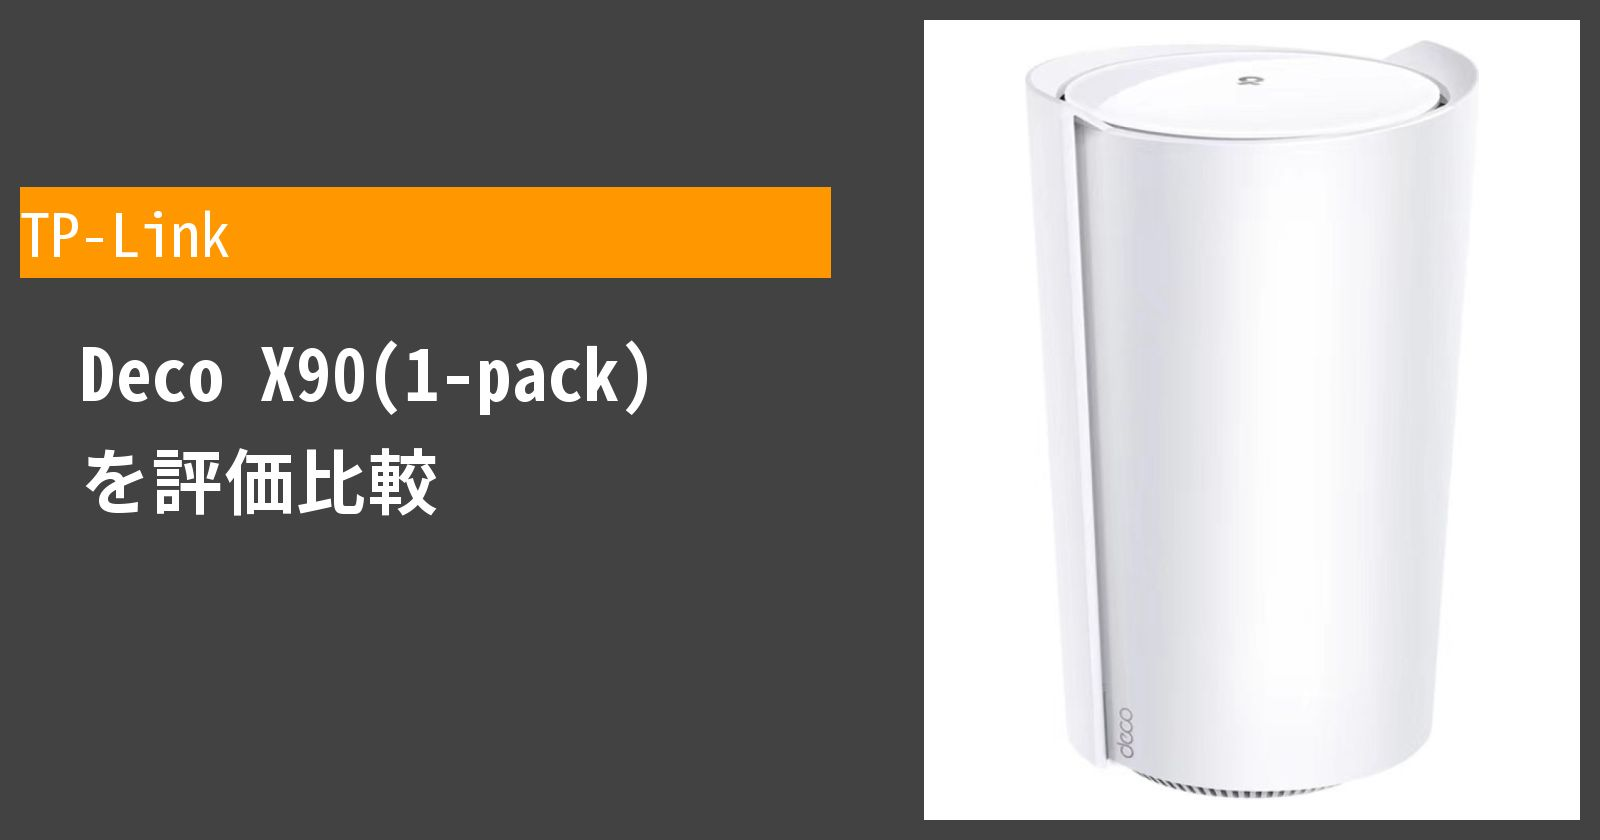 Deco X90(1-pack)を徹底評価